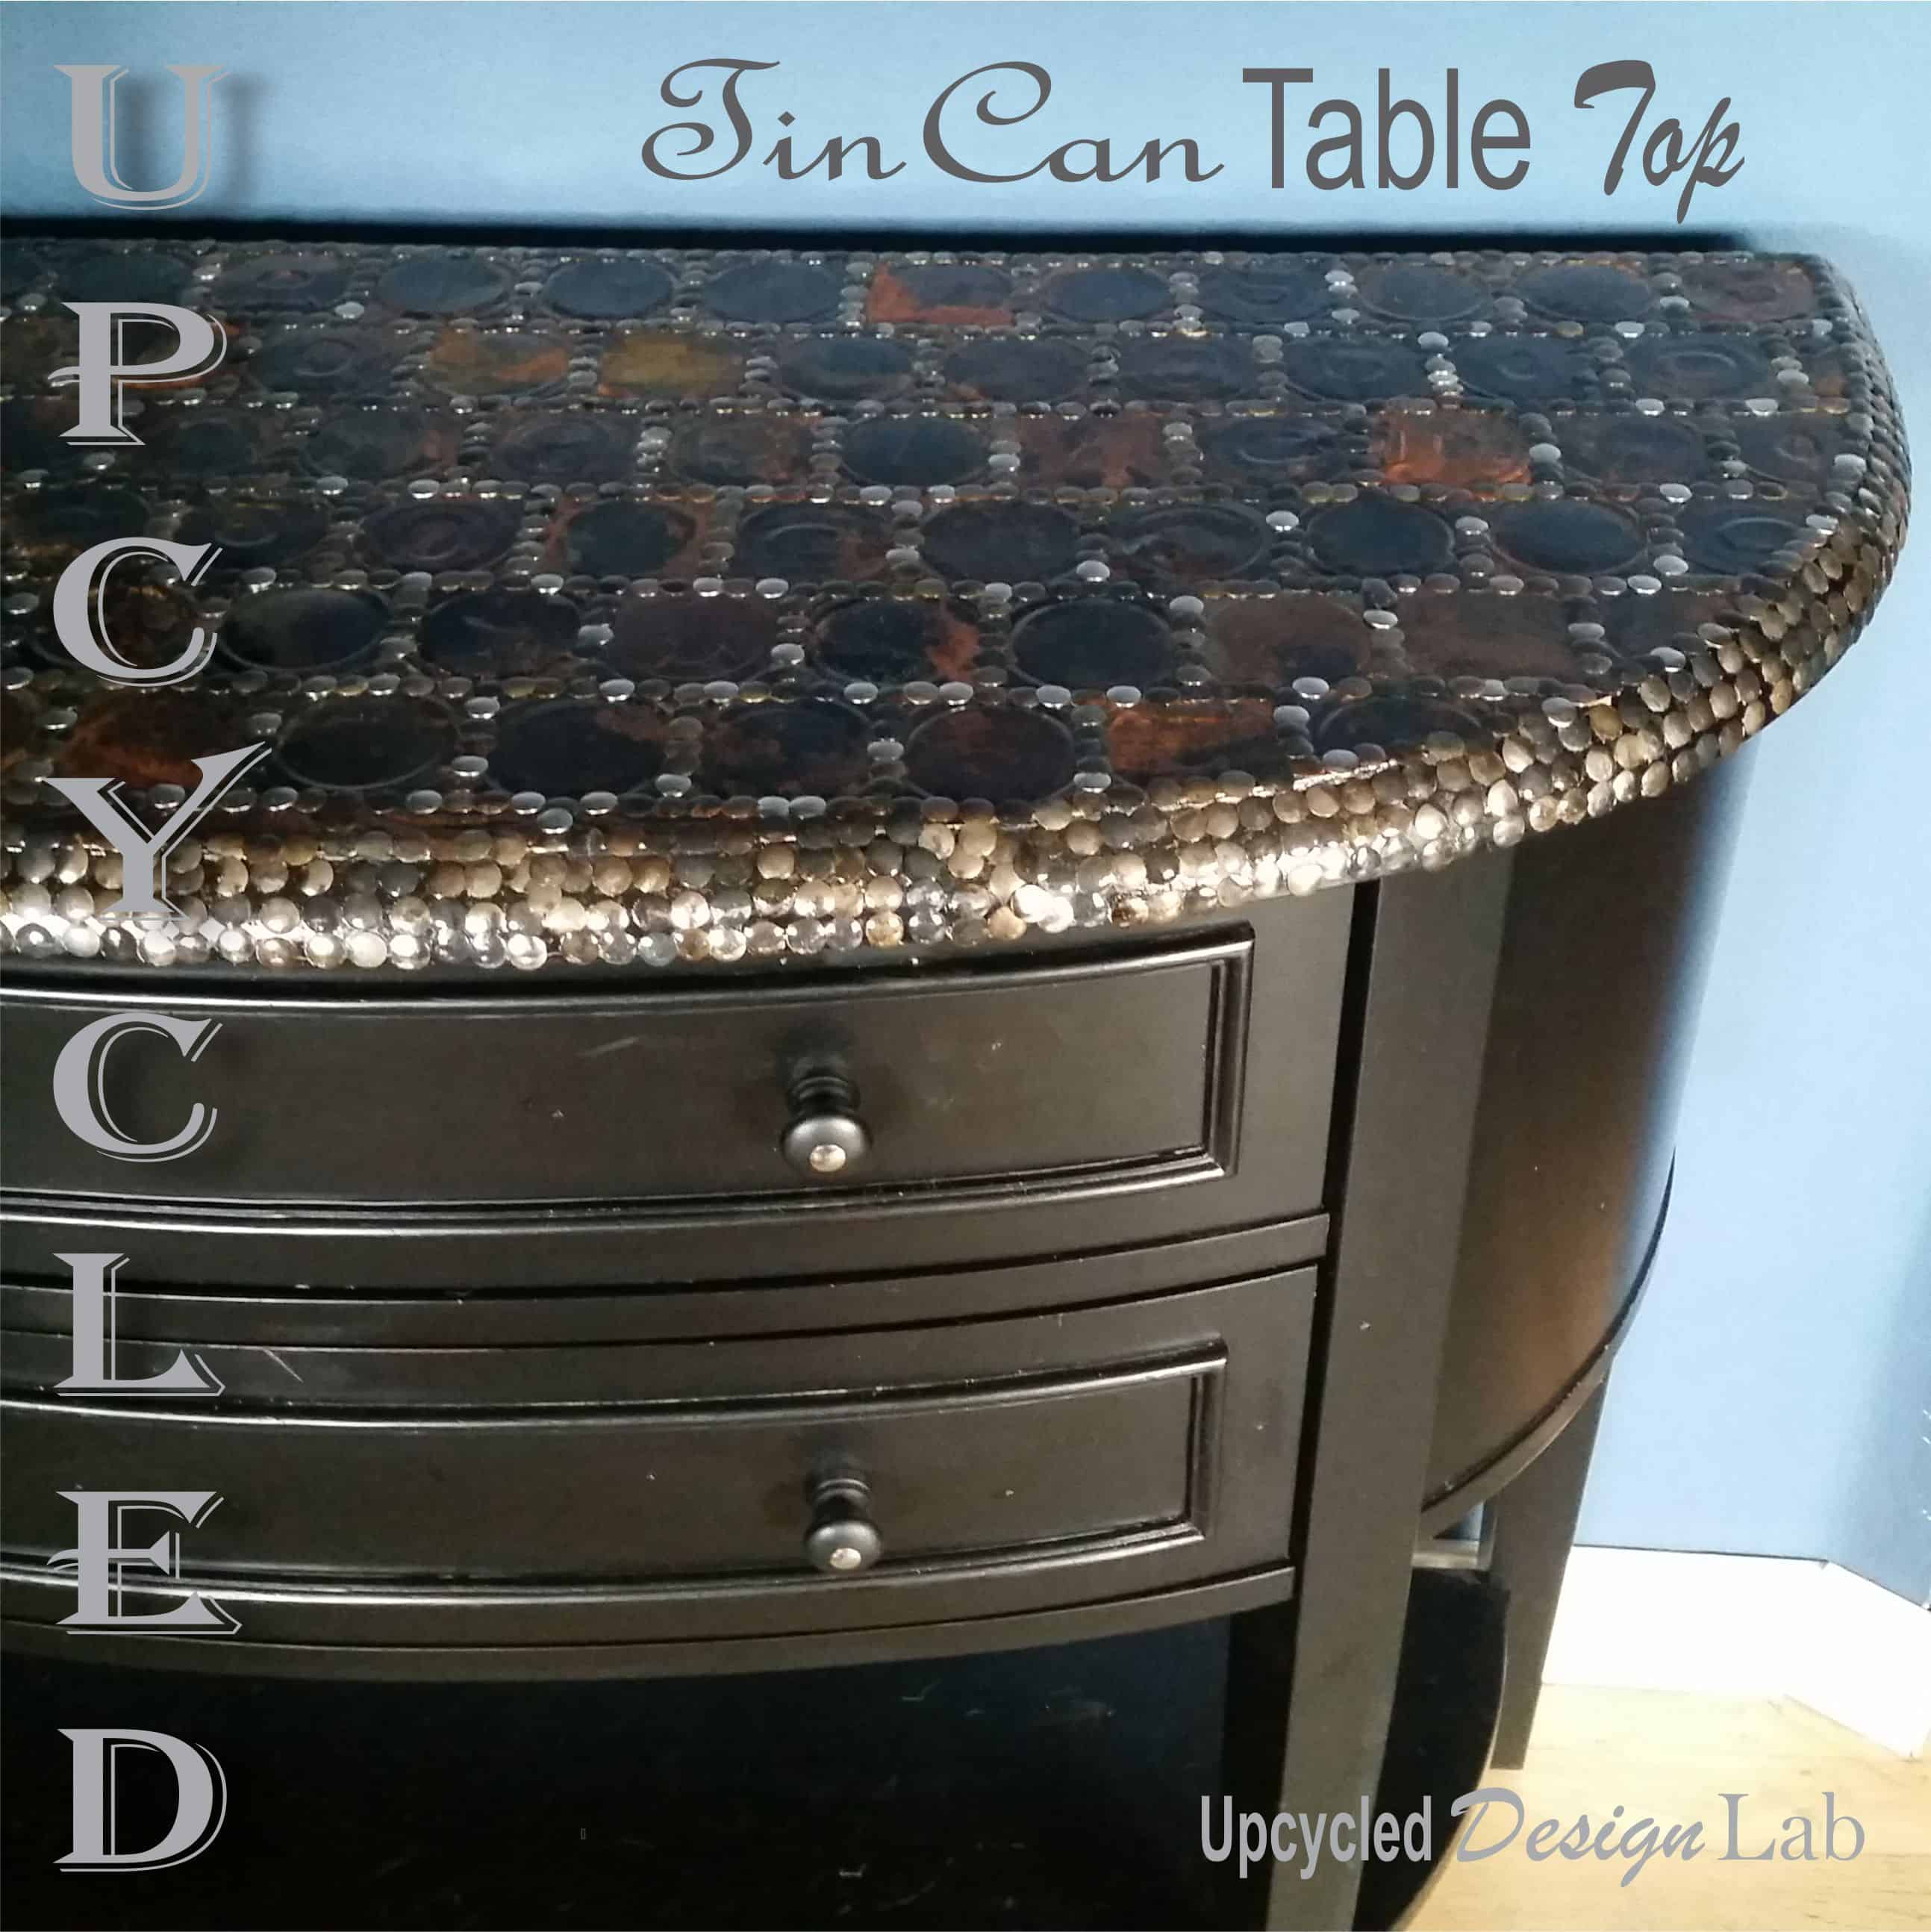 Upcycled Tin Can Lid Table Top Cover Up - Episode 4 of Dogs Vs Cats \u2022 Recyclart & Upcycled Tin Can Lid Table Top Cover Up - Episode 4 of Dogs Vs Cats ...